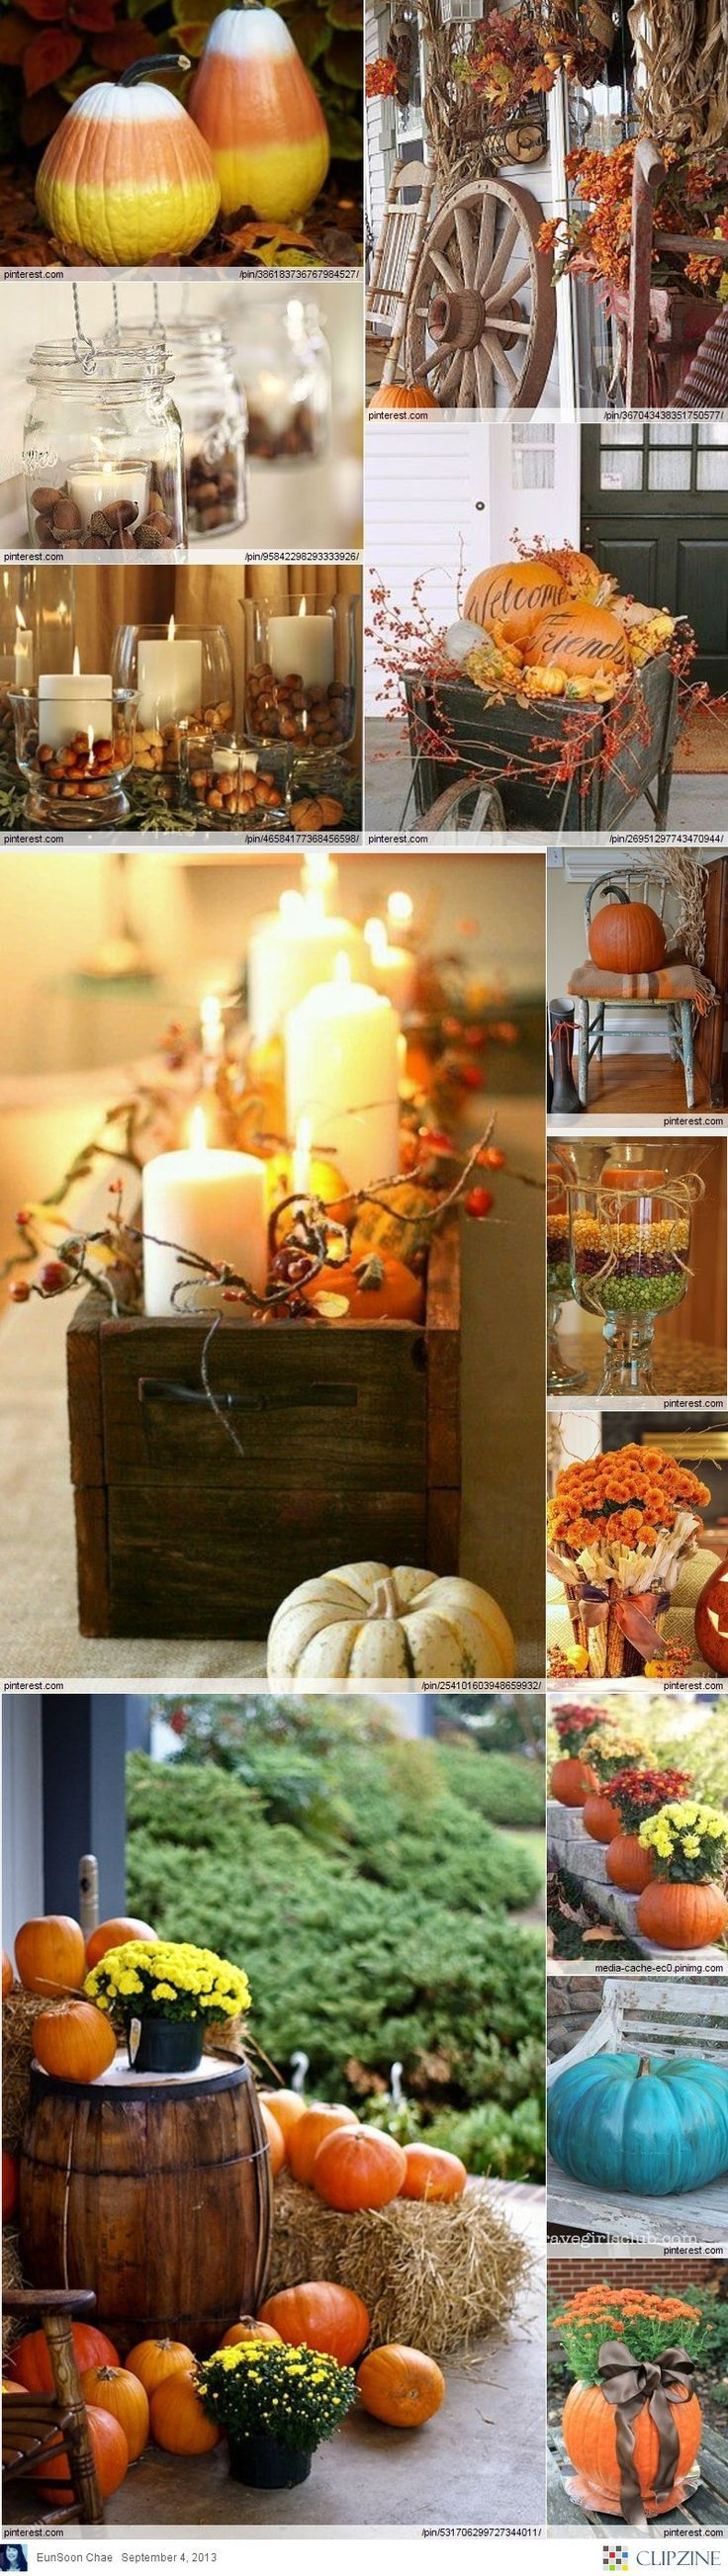 Fall Decorating Ideas   Fall   Pinterest   Thanksgiving  Holidays     Fall Decorating Ideas